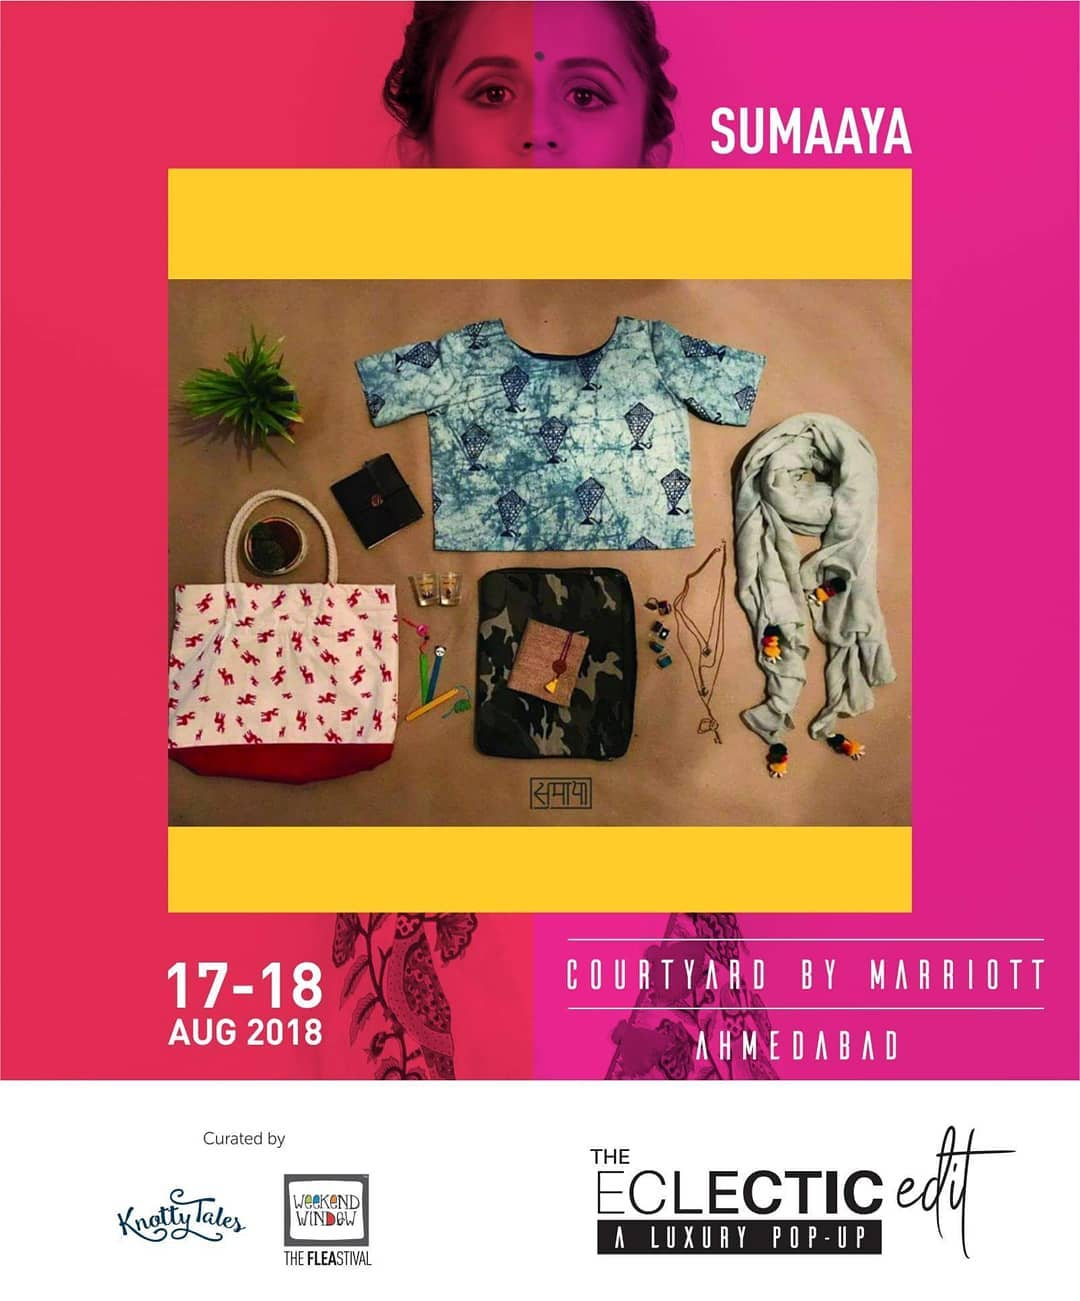 @_sumaaya04 is coming up with varity of products including block printed tops, scarves, hand bags, laptop covers, sketch books, diaries, book marks, neck pieces, earrings, rings and ceramics only at The Eclectic Edit - Season 3 curated by @knottytales_kt & @weekendwindow  on 17th-18th August at @cyahmedabad !  #ArtisticFashion #festivecollection #instafashion #weekendwindow #knottytales #countdownbegins #shoptillyoudrop #sumaaya